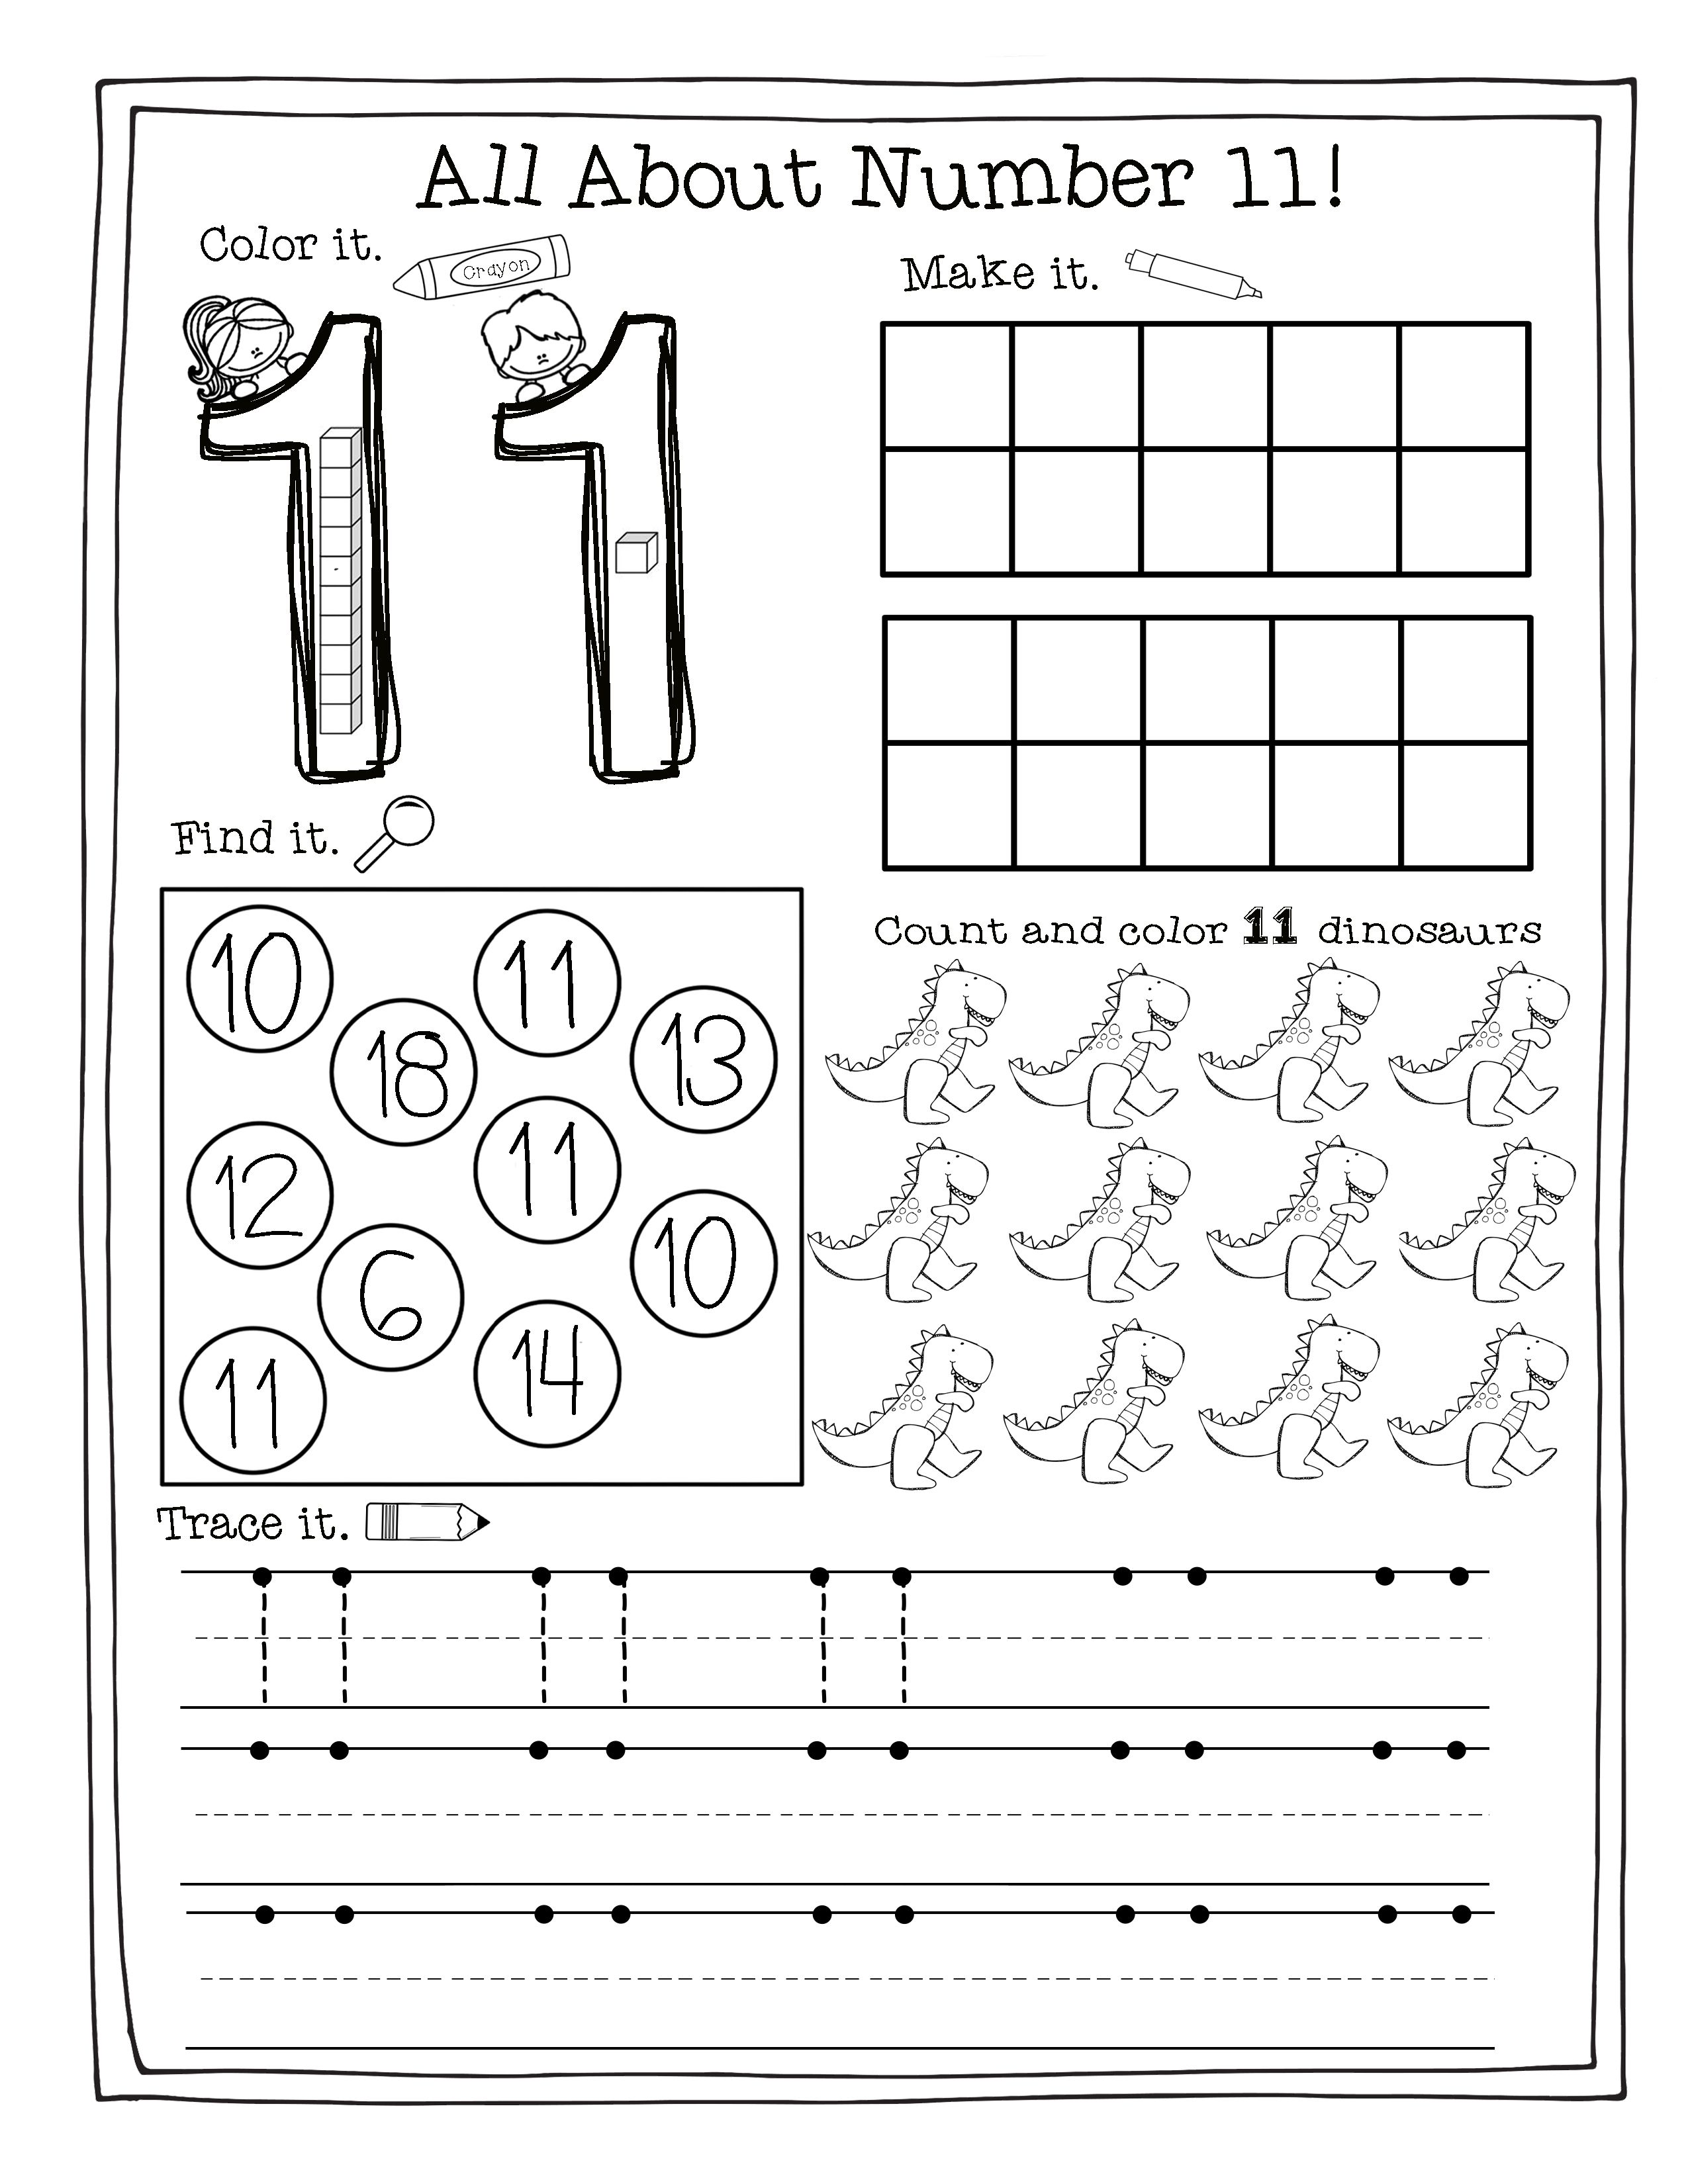 Uncategorized Joe And Charlie Worksheets teen number practice numbers writing and kindergarten math printable worksheets 11 19 students show different ways